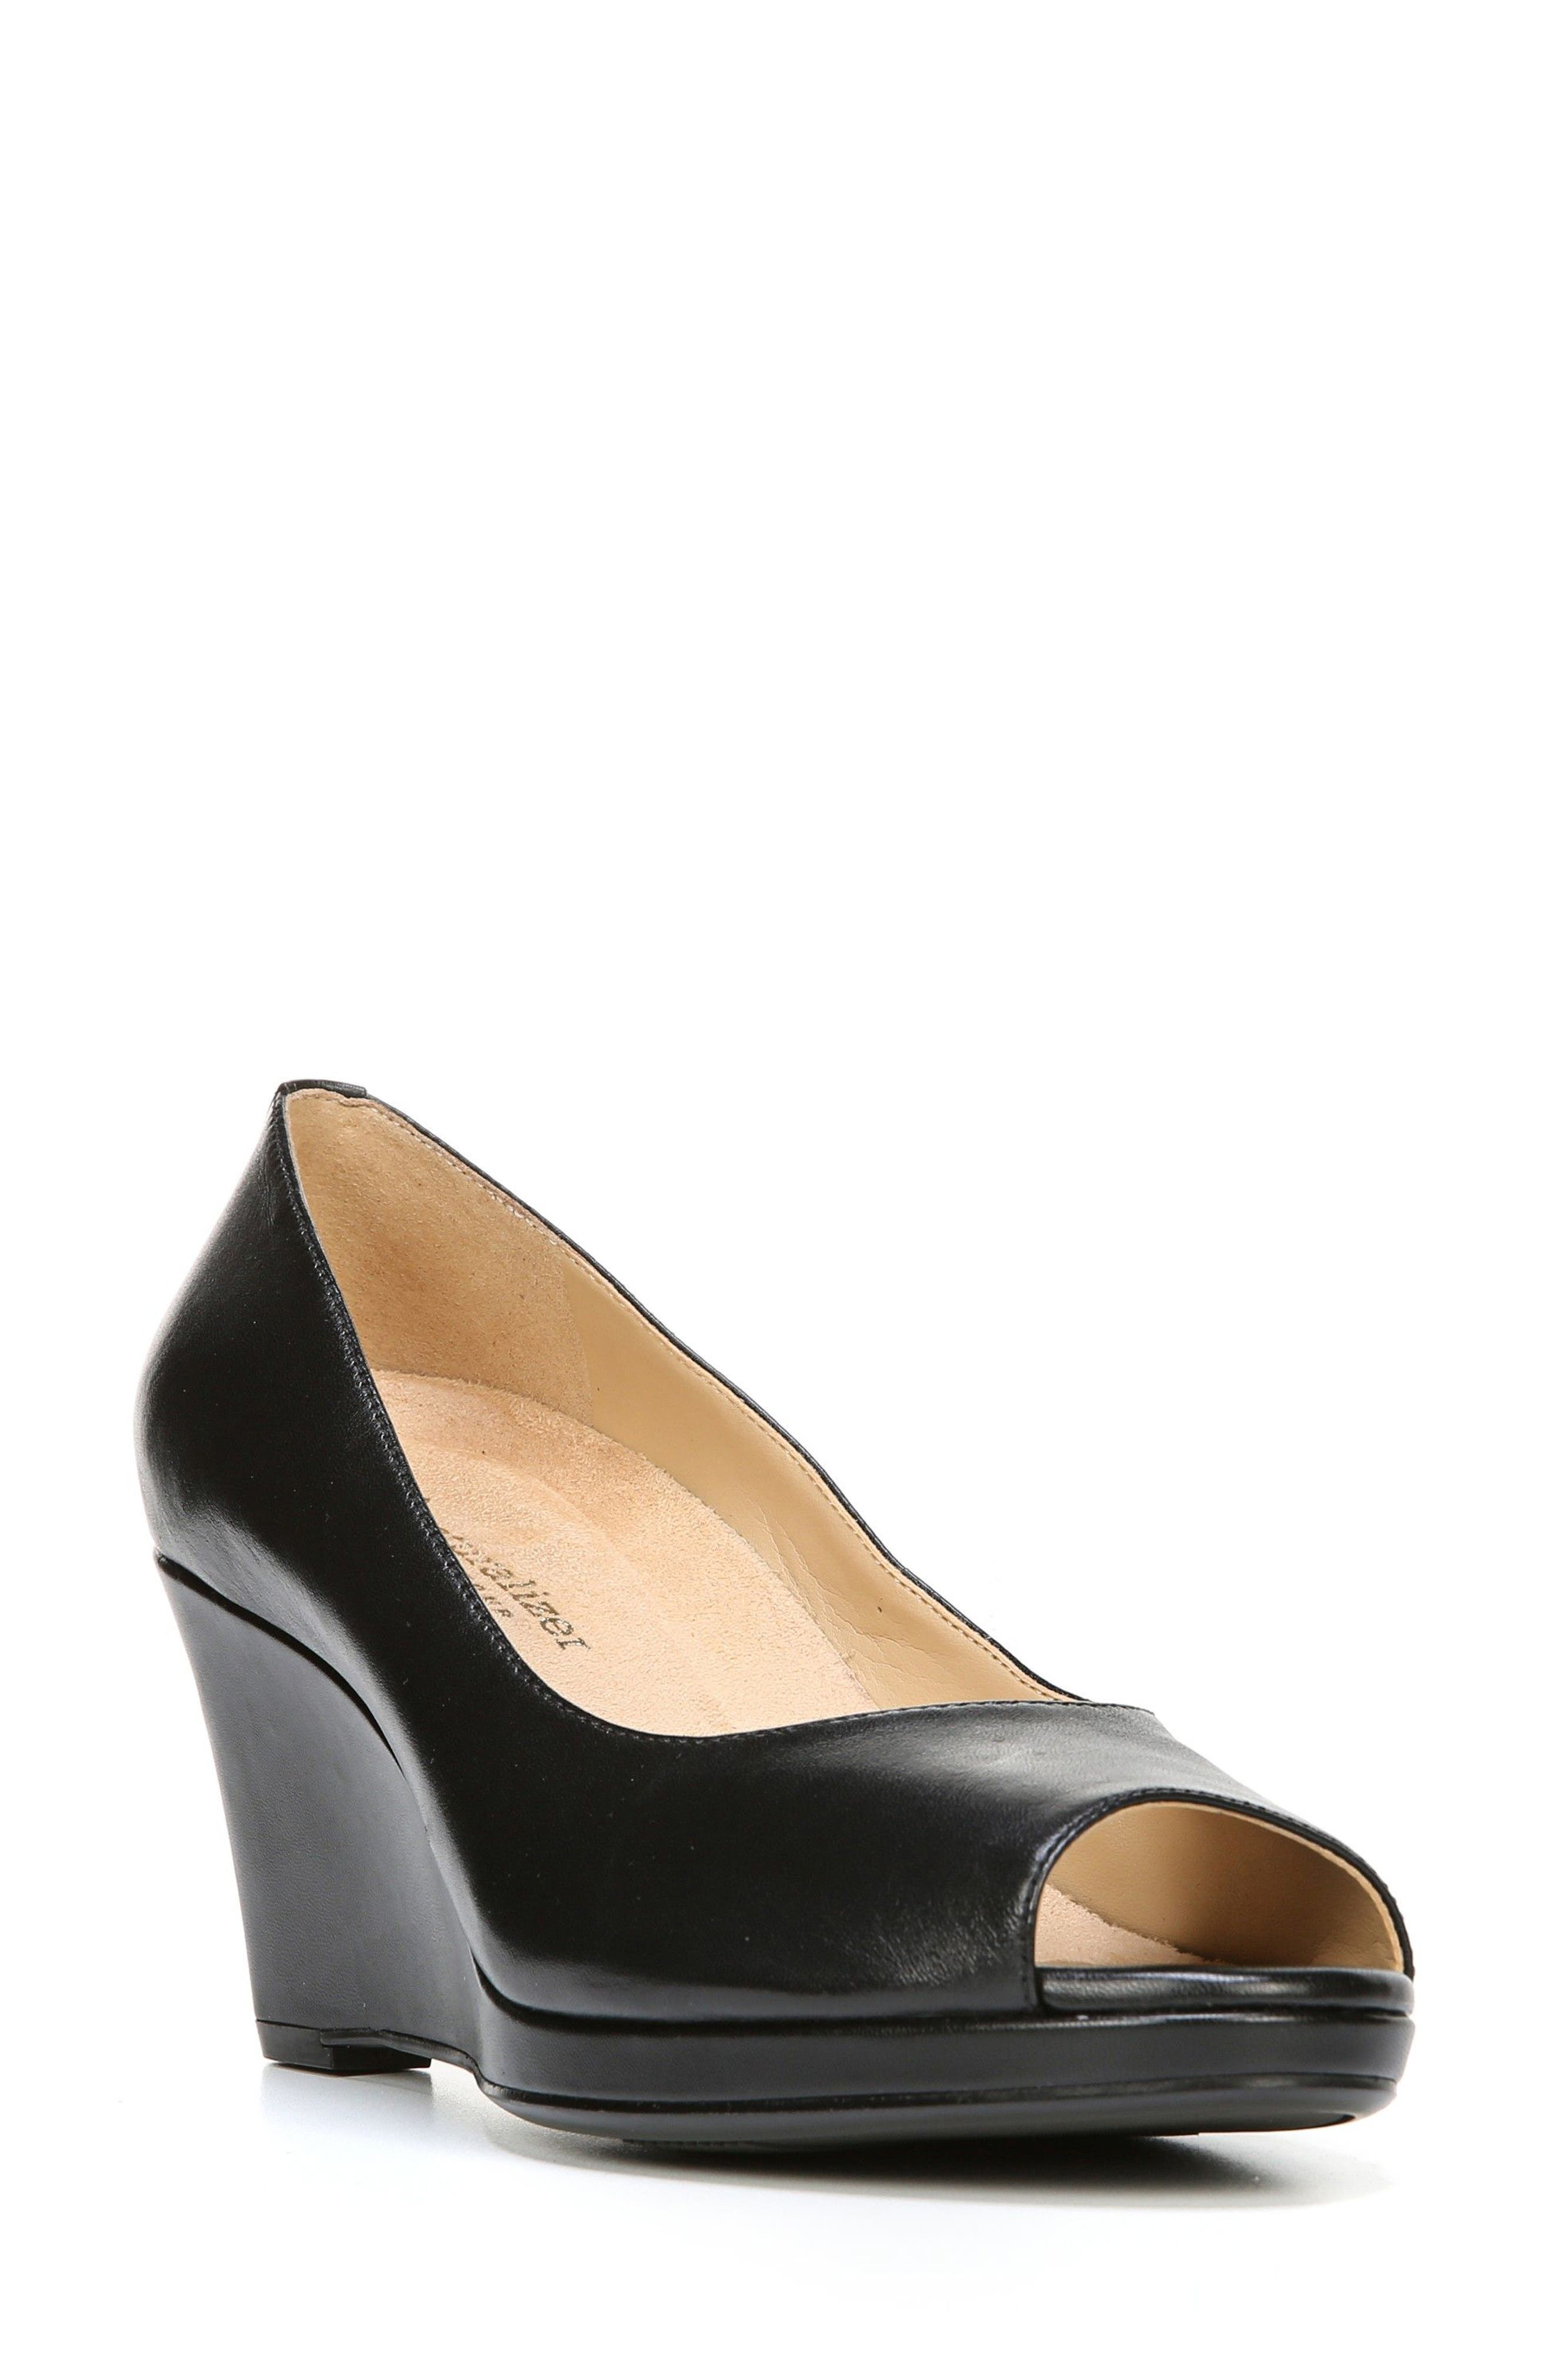 Olivia Peep Toe Wedge,                             Main thumbnail 1, color,                             BLACK LEATHER